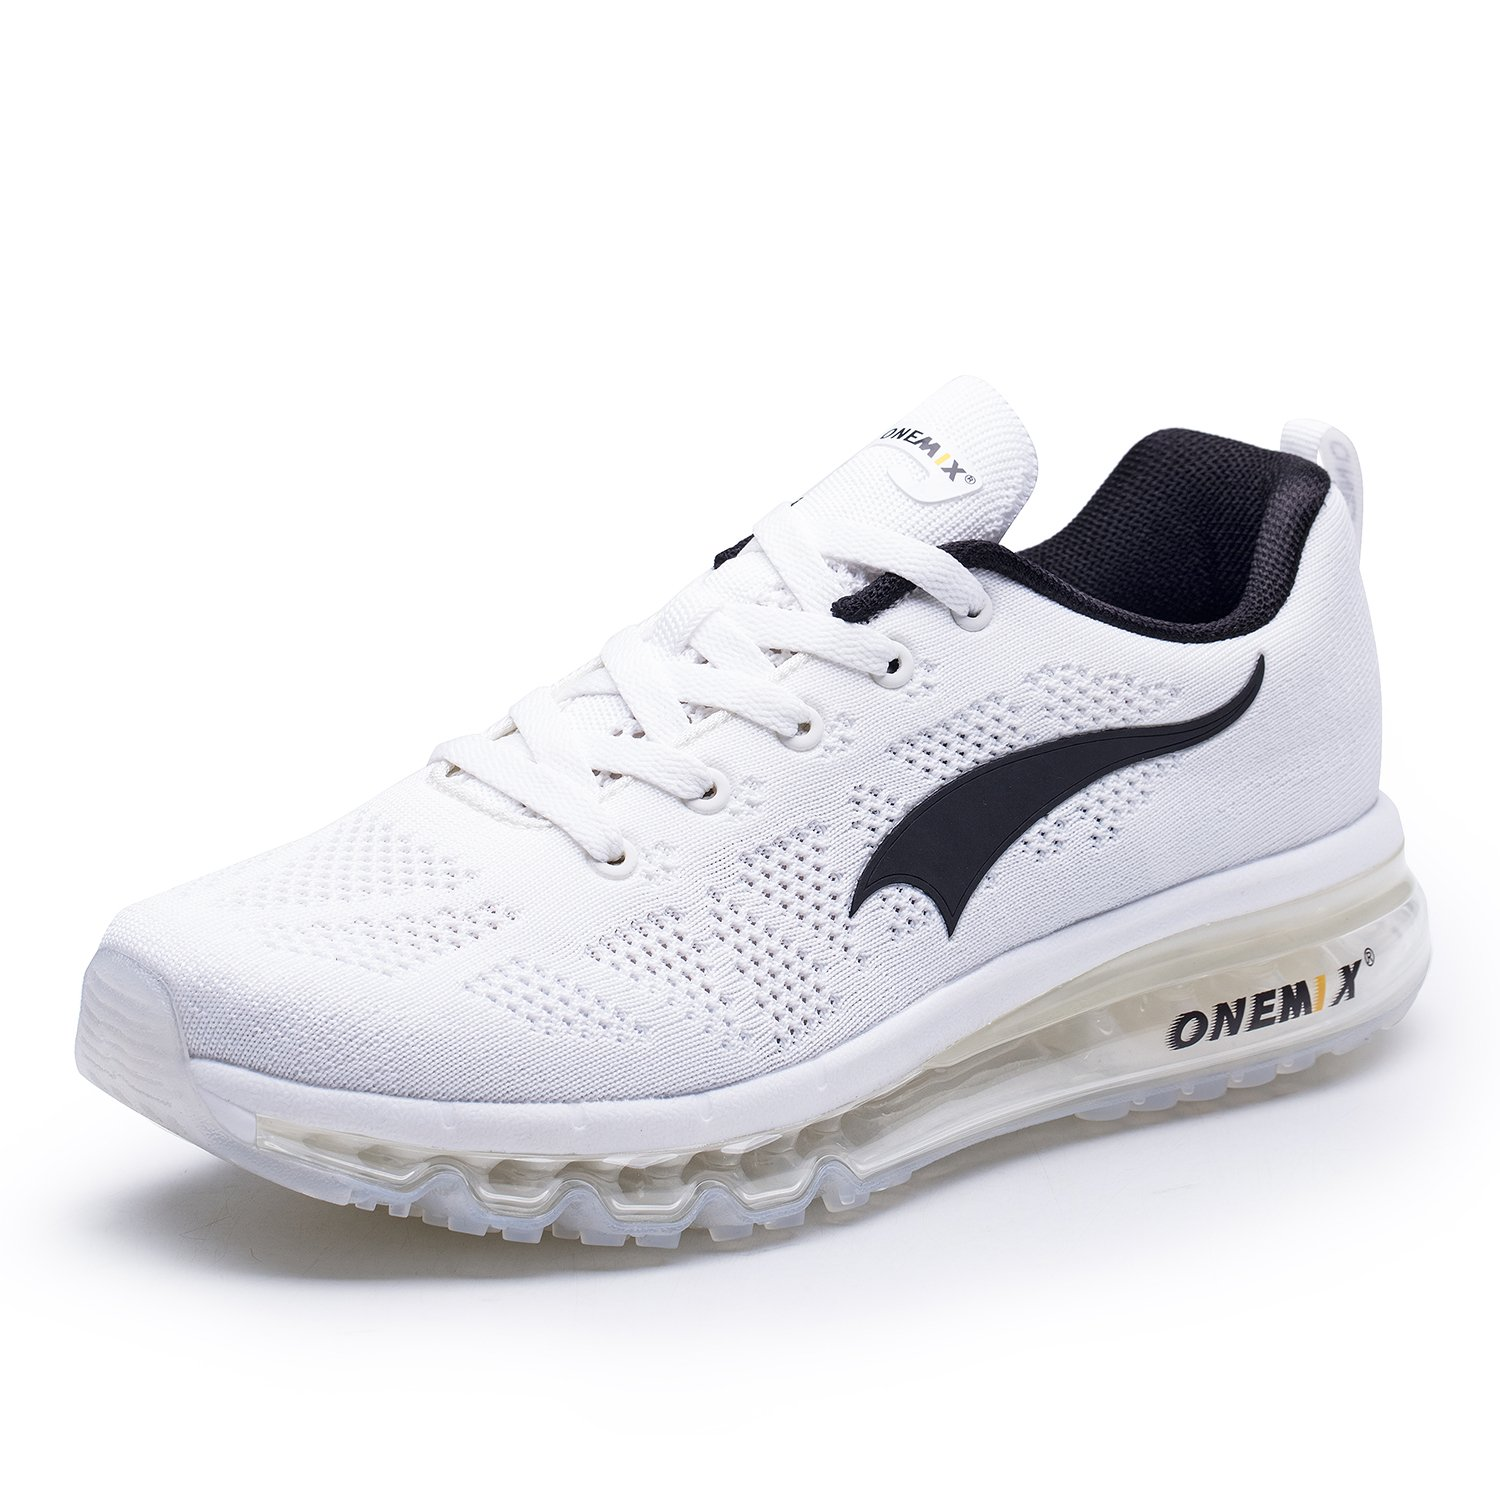 ONEMIX Men's Air Cushion Outdoor Sport Running Shoes Casual Sneakers B071Y59B7N 10 D(M)US 11.02inch|White / Black